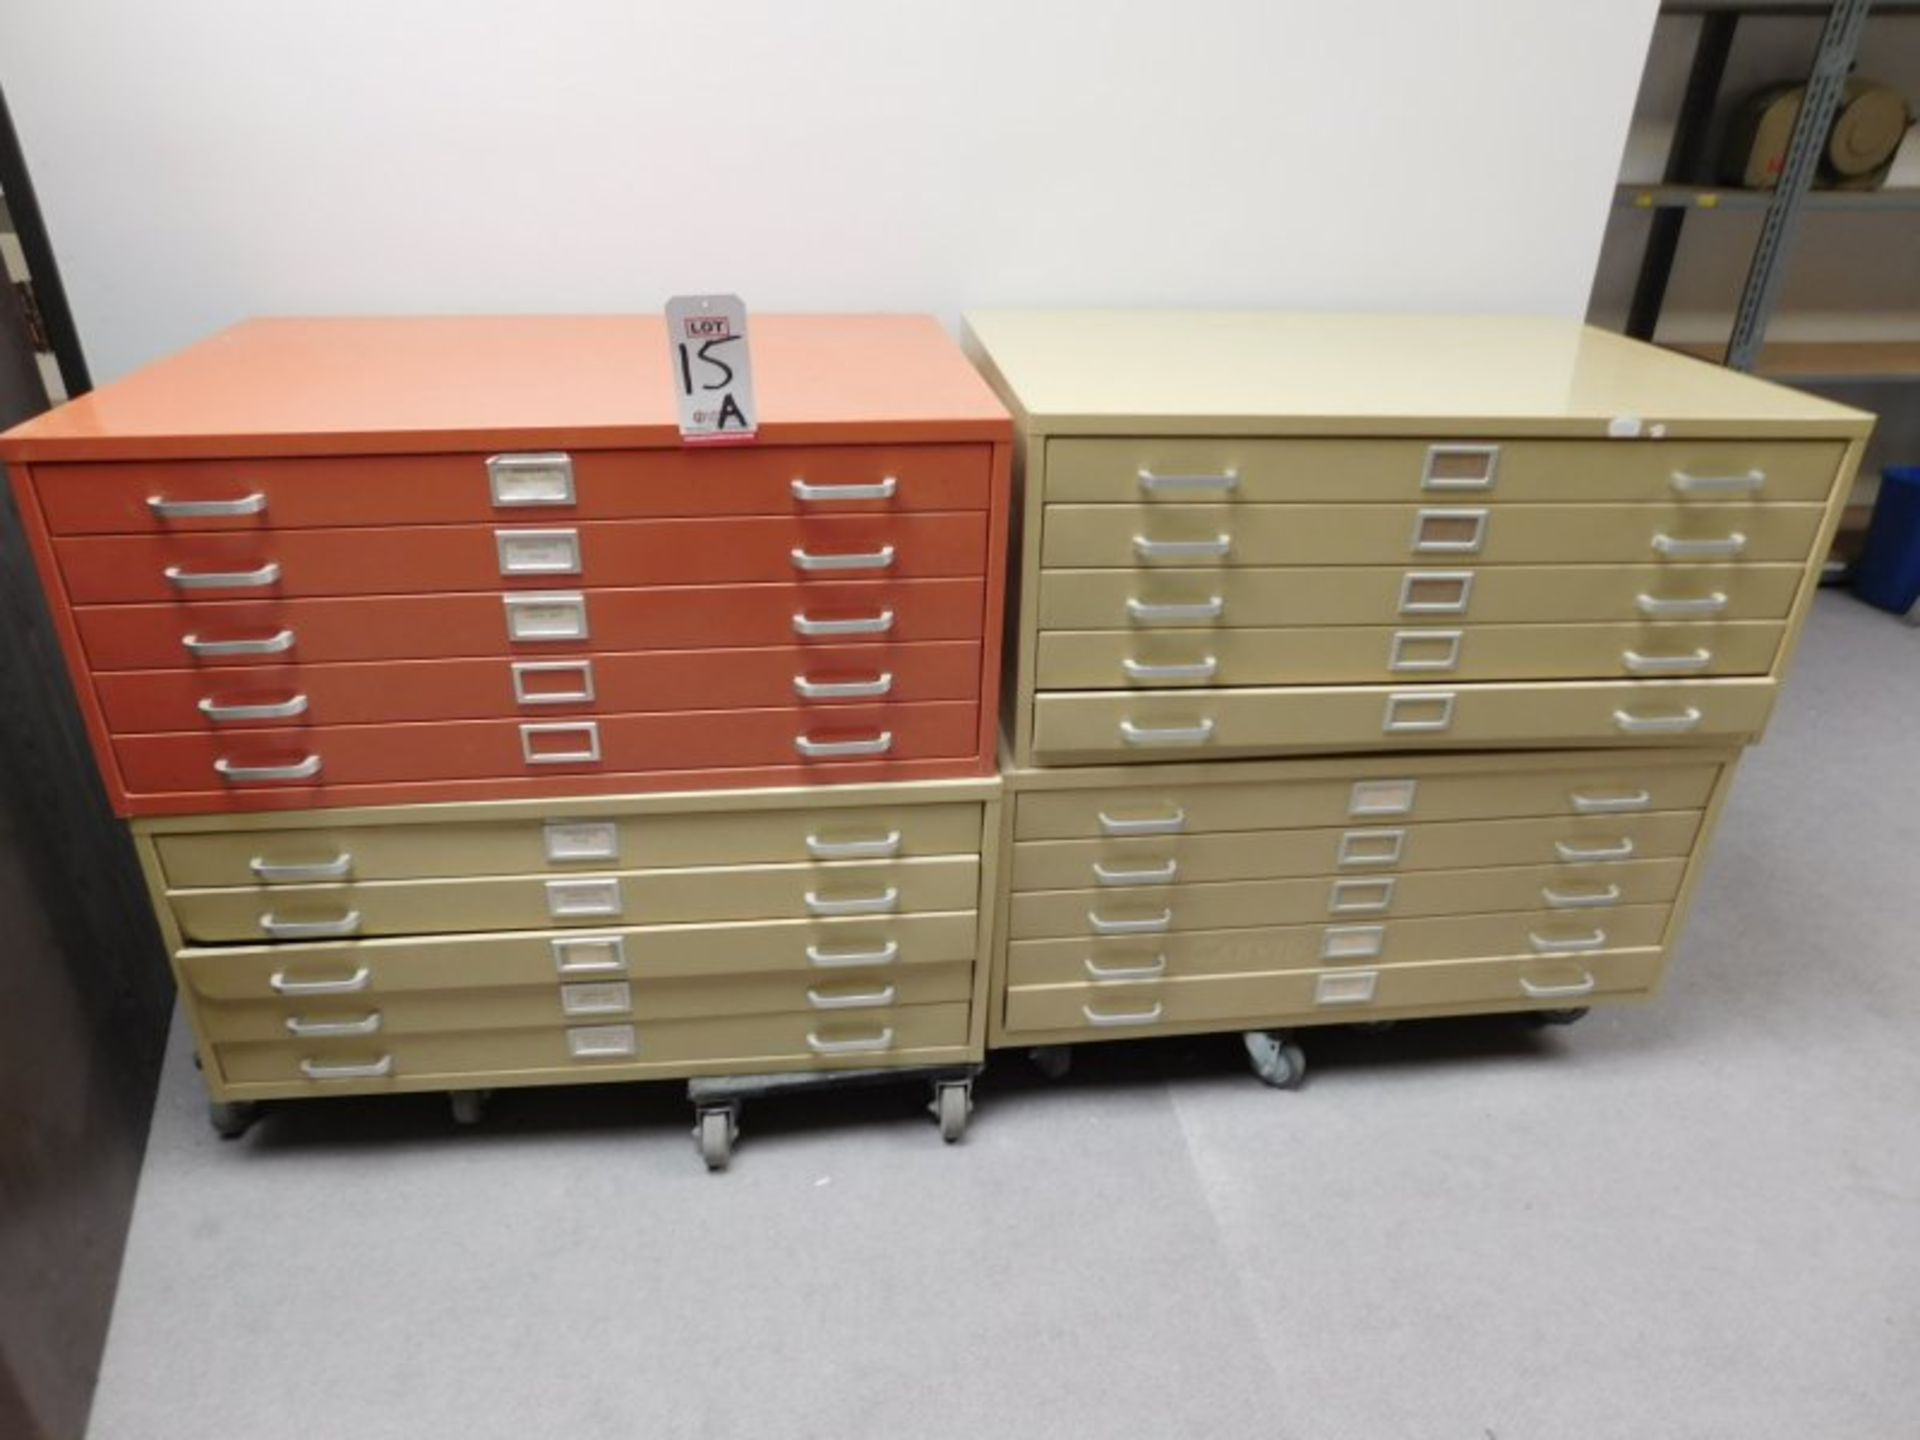 Lot 15A - LOT OF (4) 5-DRAWER BLUEPRINT CABINETS